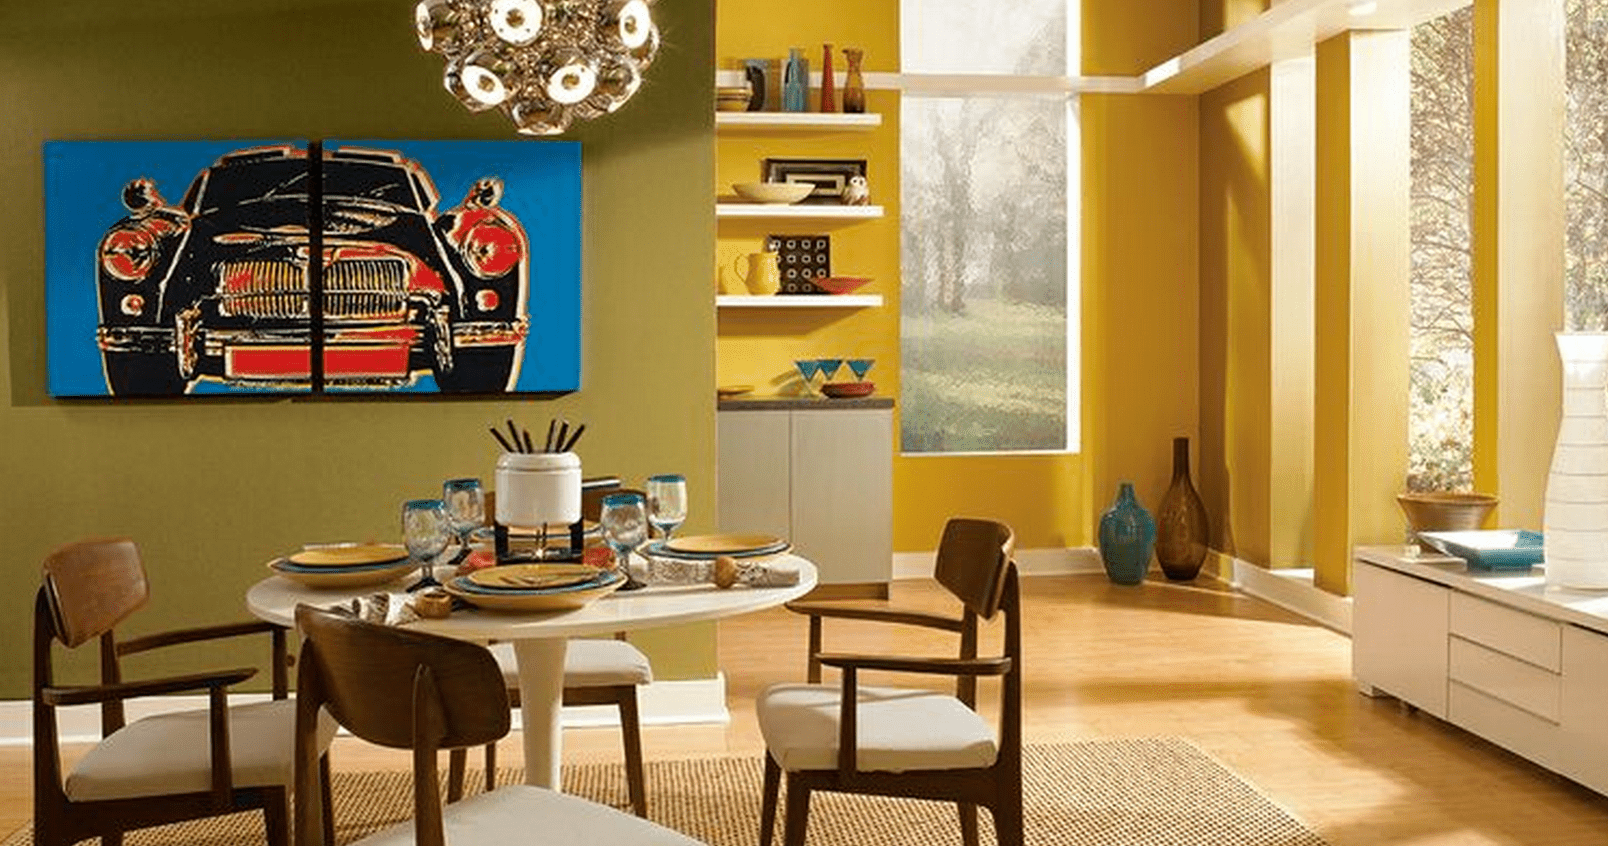 Color Copycat: How to Decorate a Mid-Century Modern Room